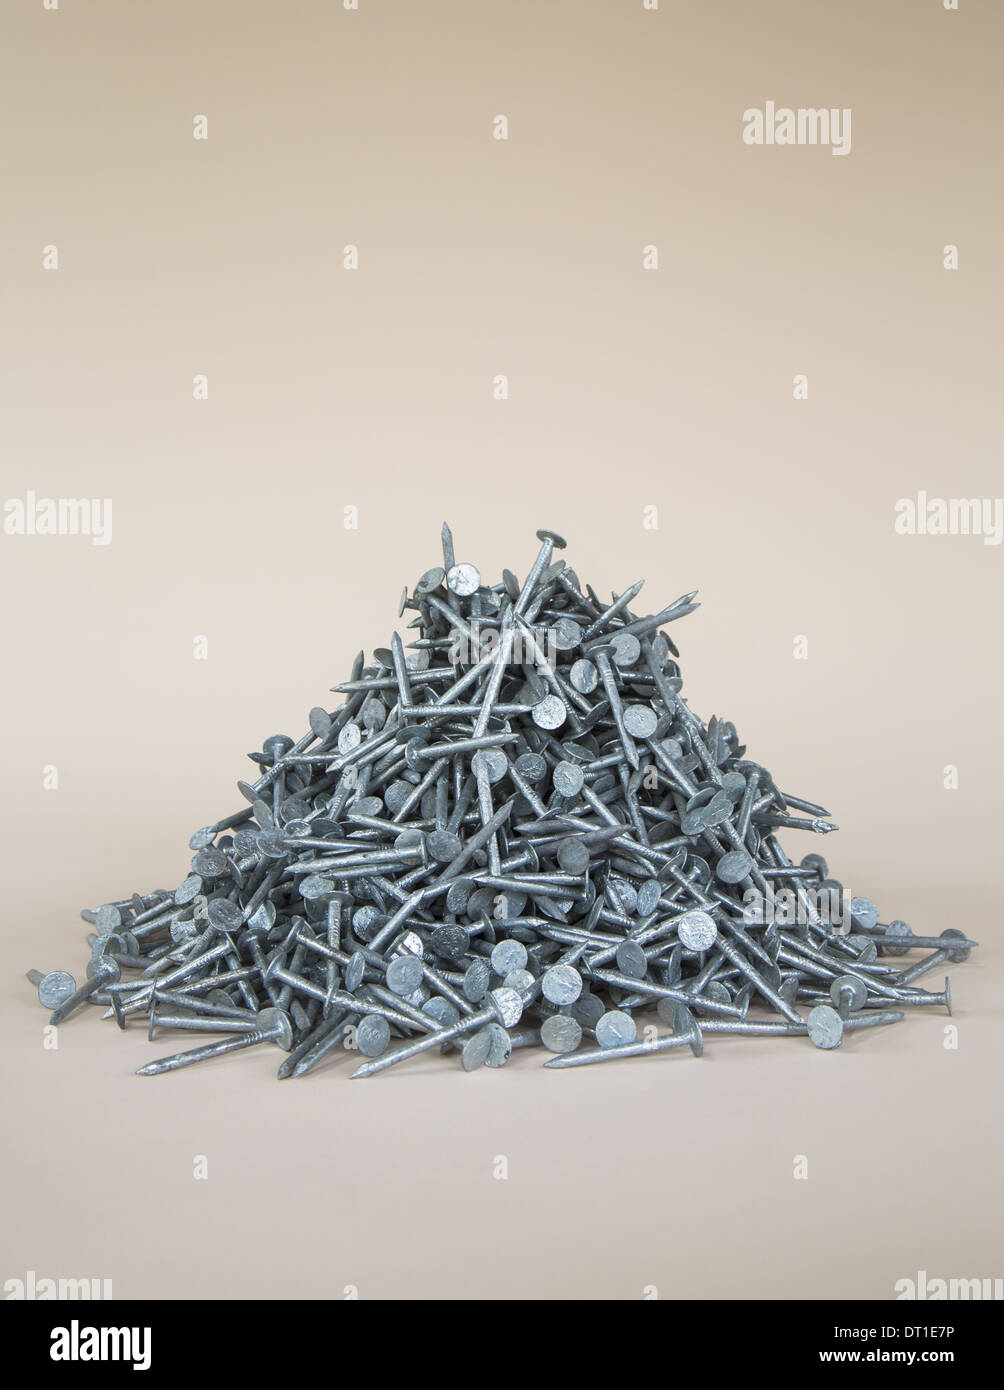 heaped pile of galvanized nails - Stock Image